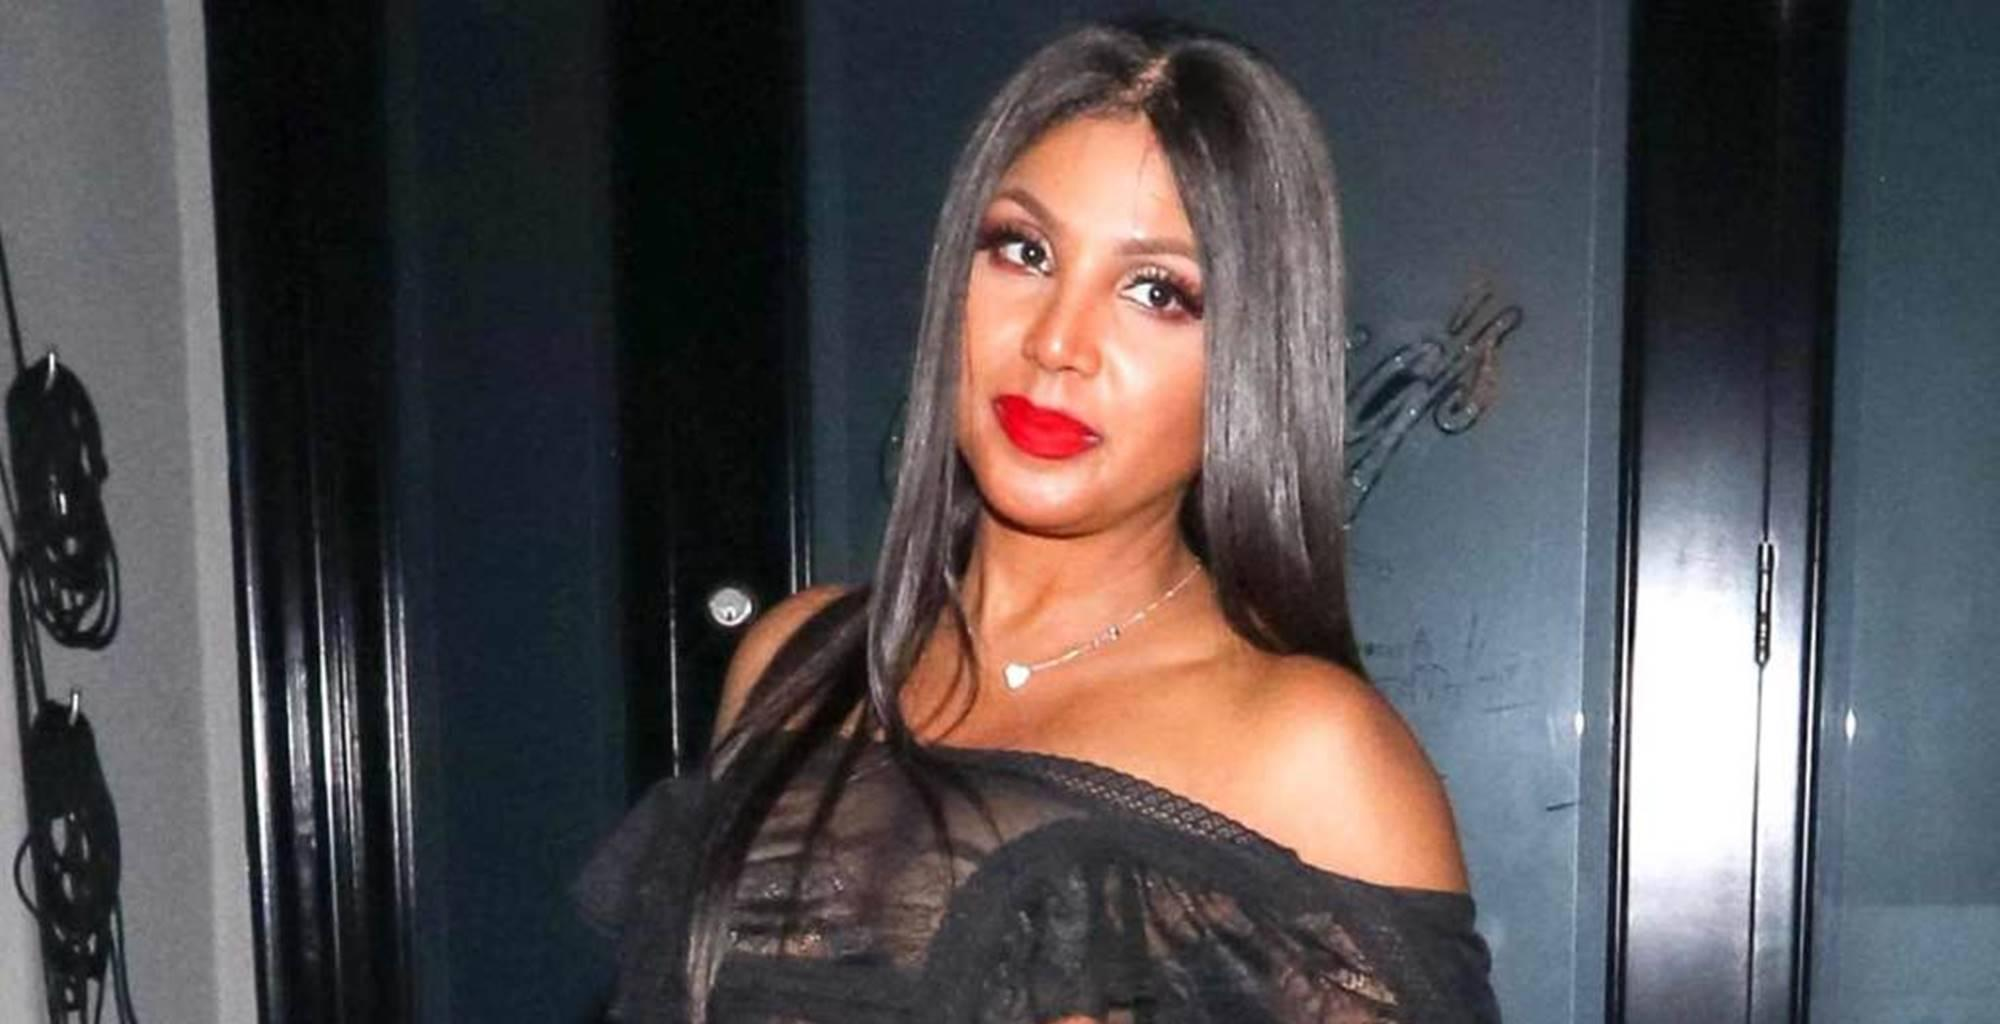 Toni Braxton Shows Off Her Natural Beauty In Bed Video After Birdman Split -- This Is What Lil Wayne's Former Mentor Is Missing